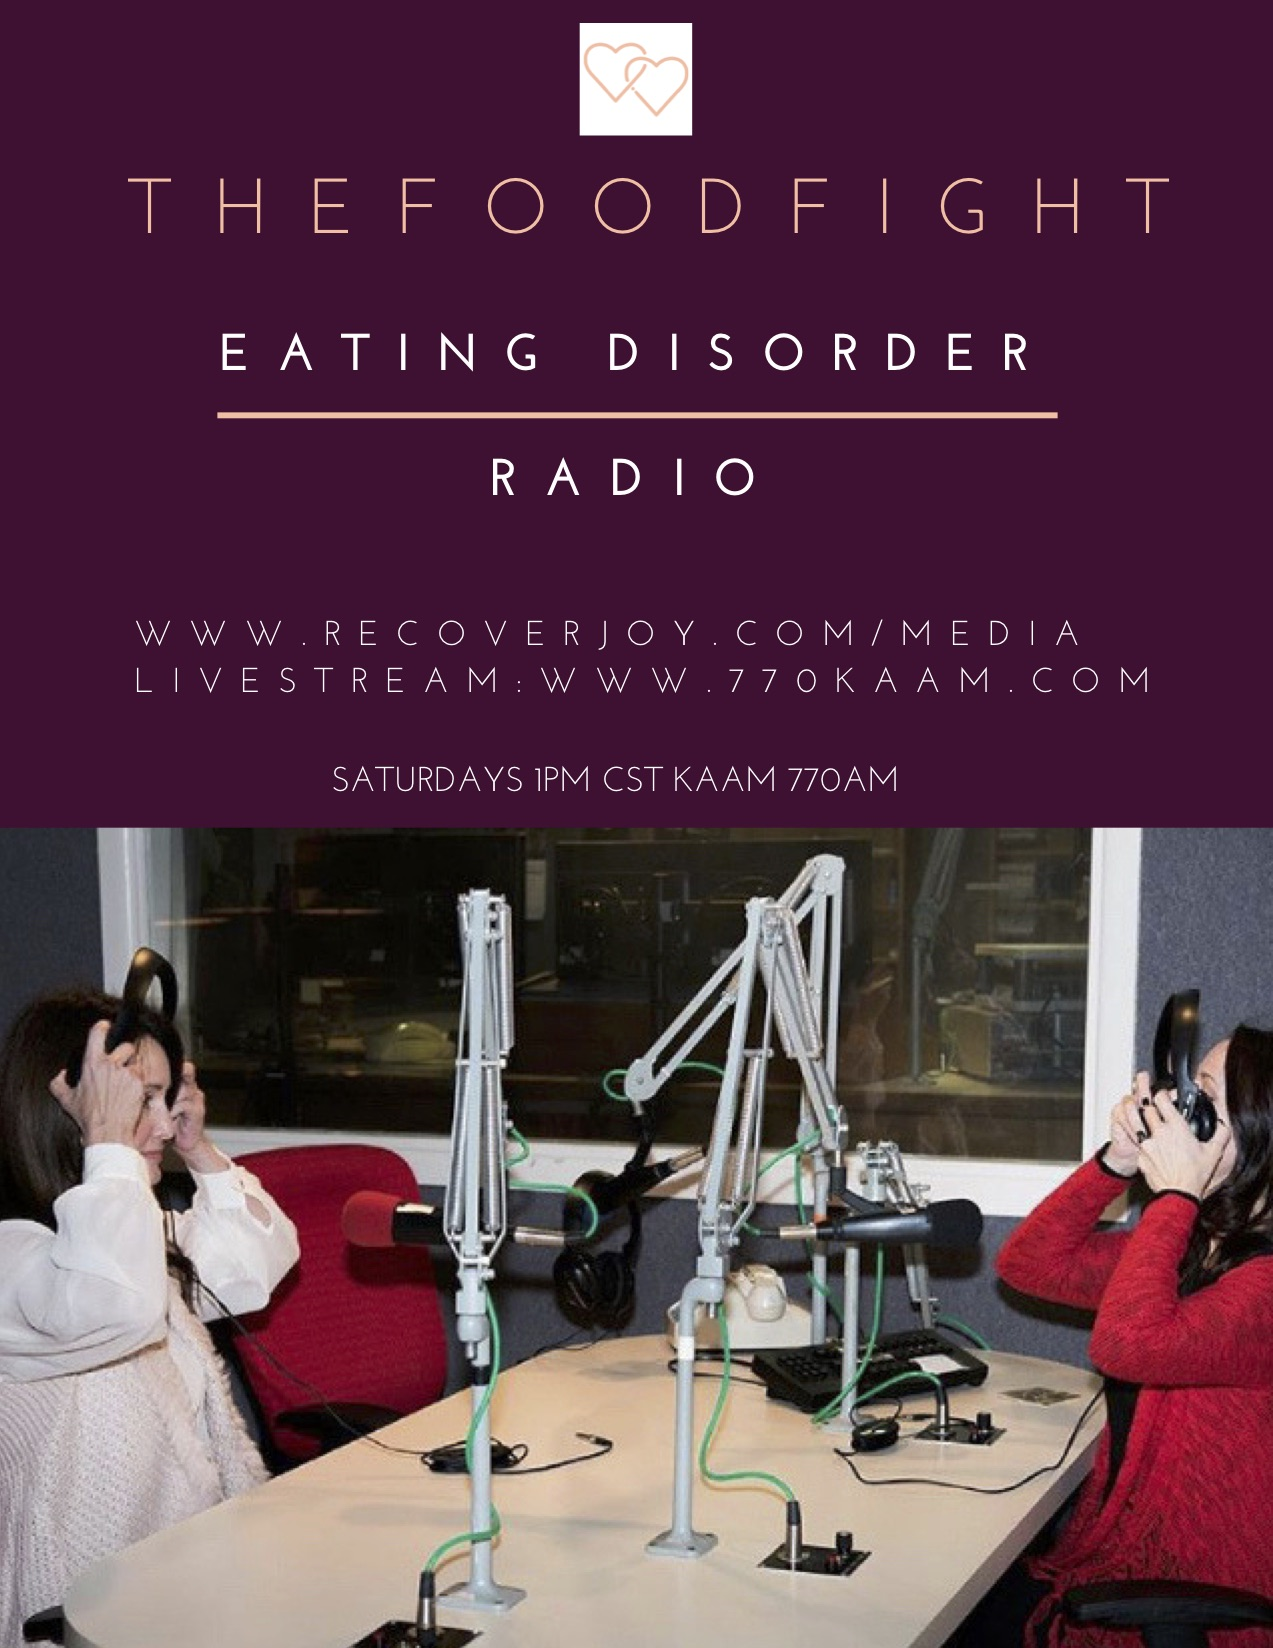 The Food Fight - Seeking Help & Eating Disorder Awareness, Dallas Nutritional Counseling, Casey Bonano RD, LD, CEDRD #dallasnutritionalcounseling #balancedeating #caseybonanord #dallasrd #dietitian #nutritionist #nondiet #intuitiveeating #foodforthought #thefoodfight #cravings